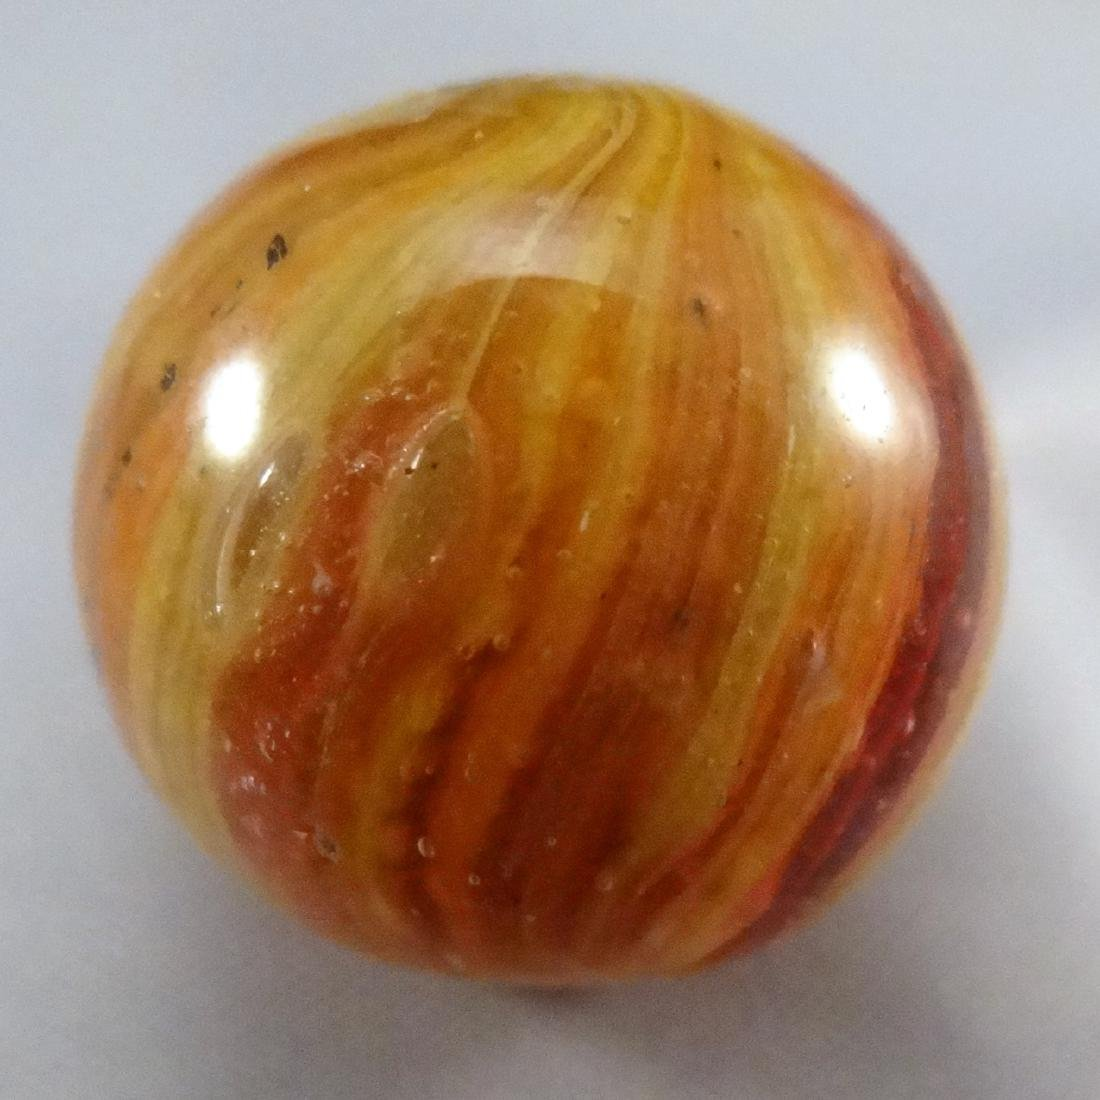 "Lot 60. END OF DAY, Onionskin. 25/32"". 9.9"